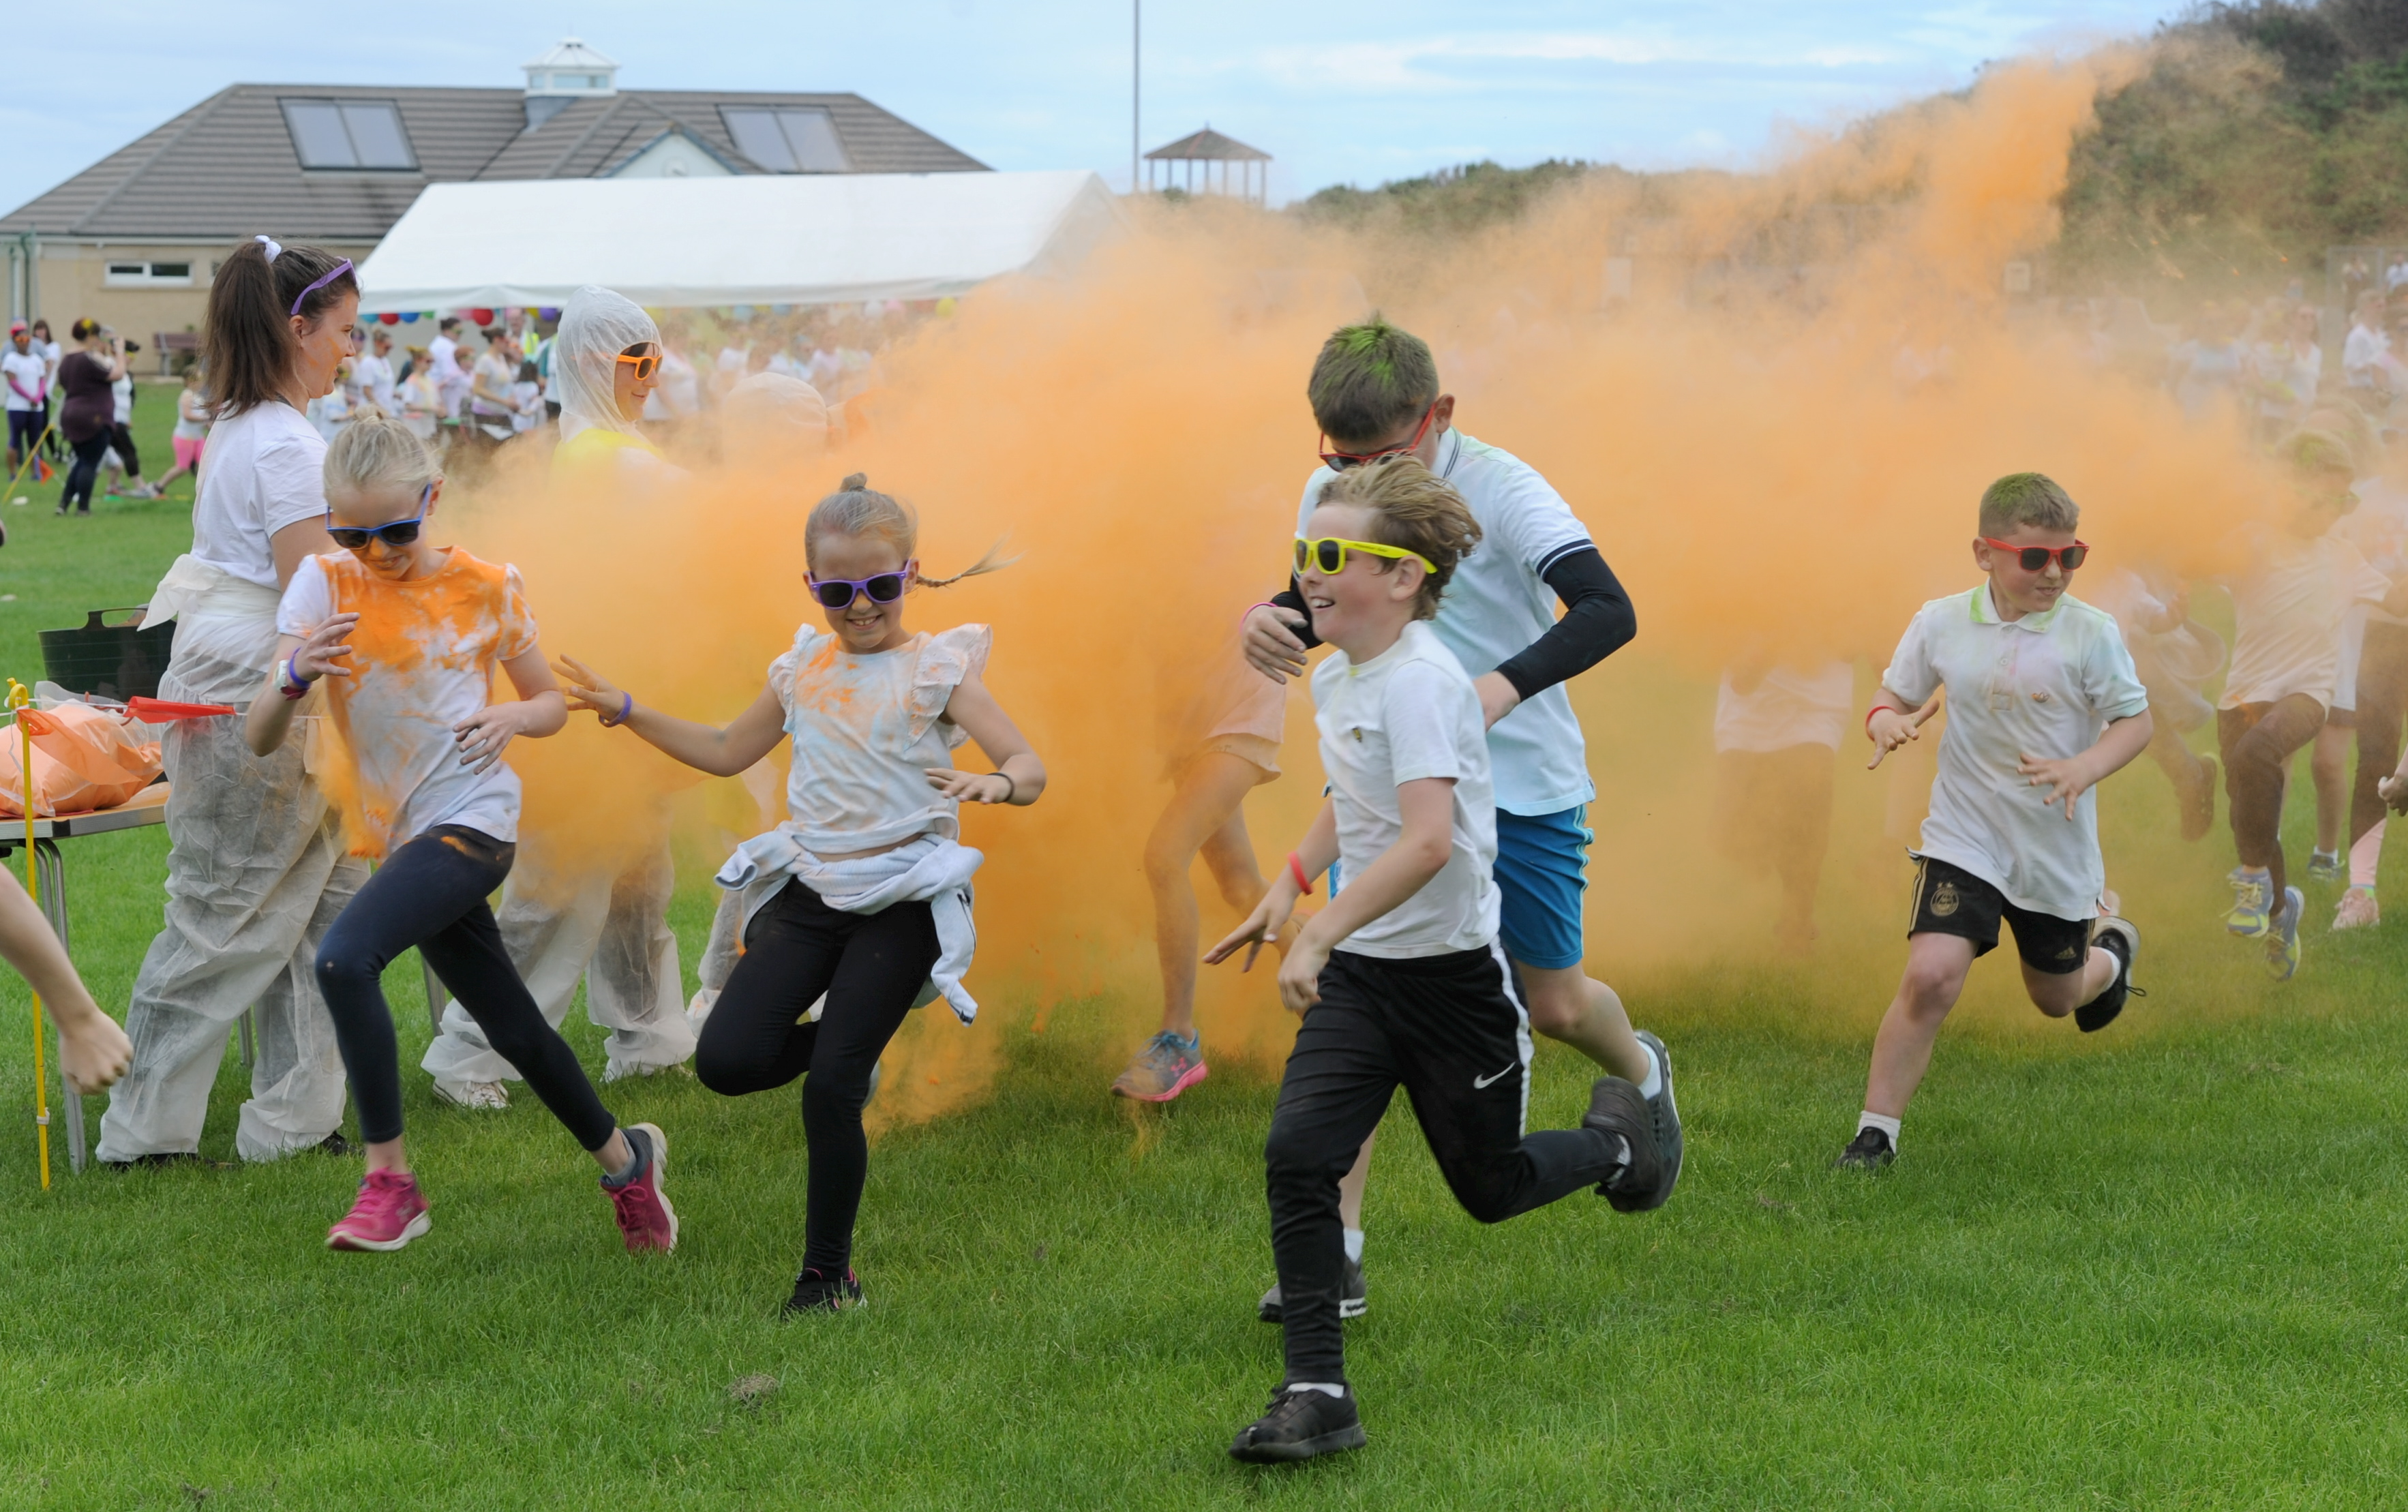 Participants take part in the Colour Run on Saturday held as part of the Hopeman Gala